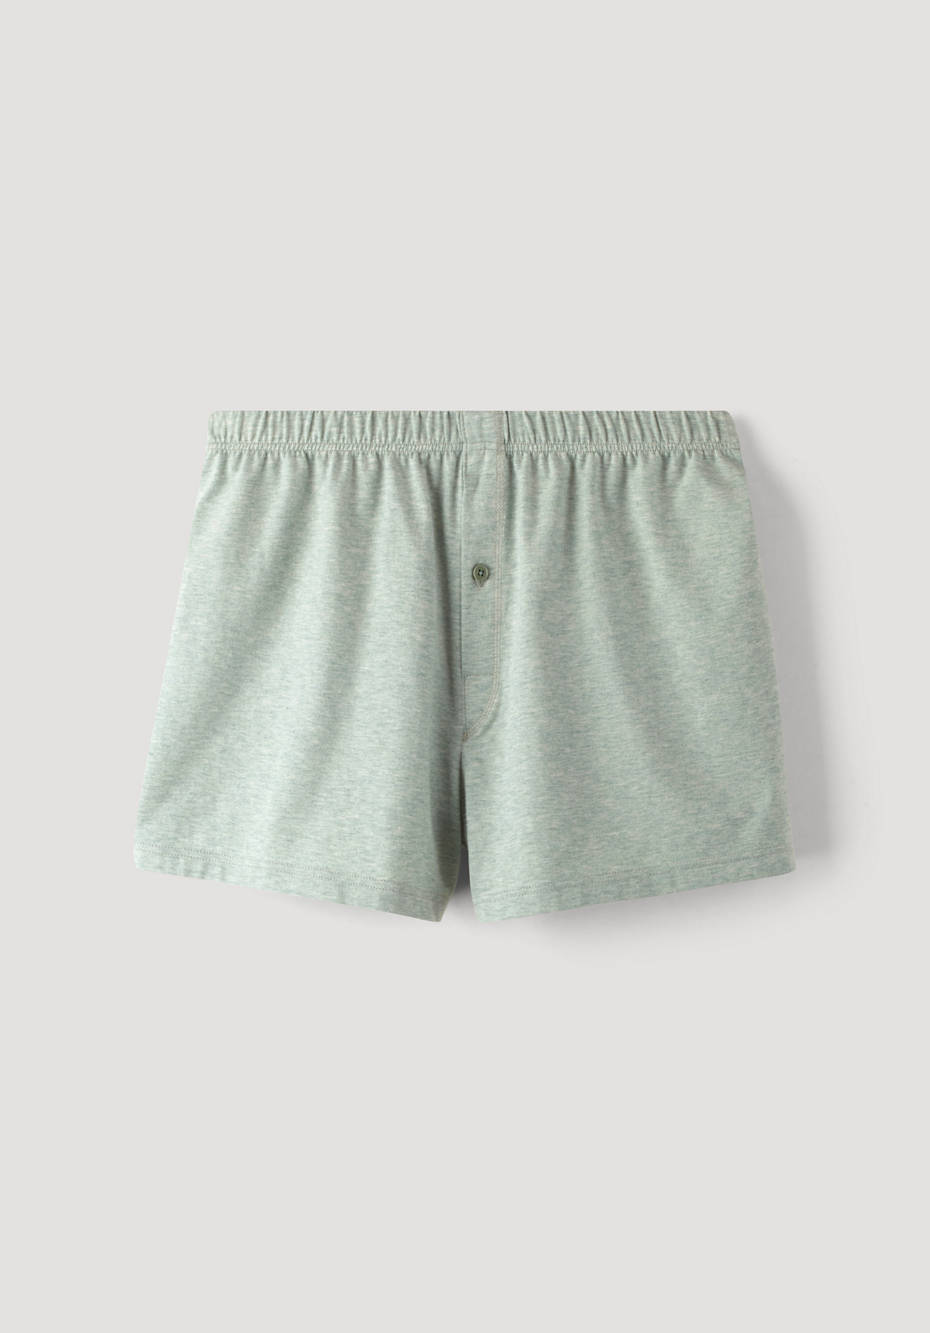 Boxer shorts made from pure organic cotton